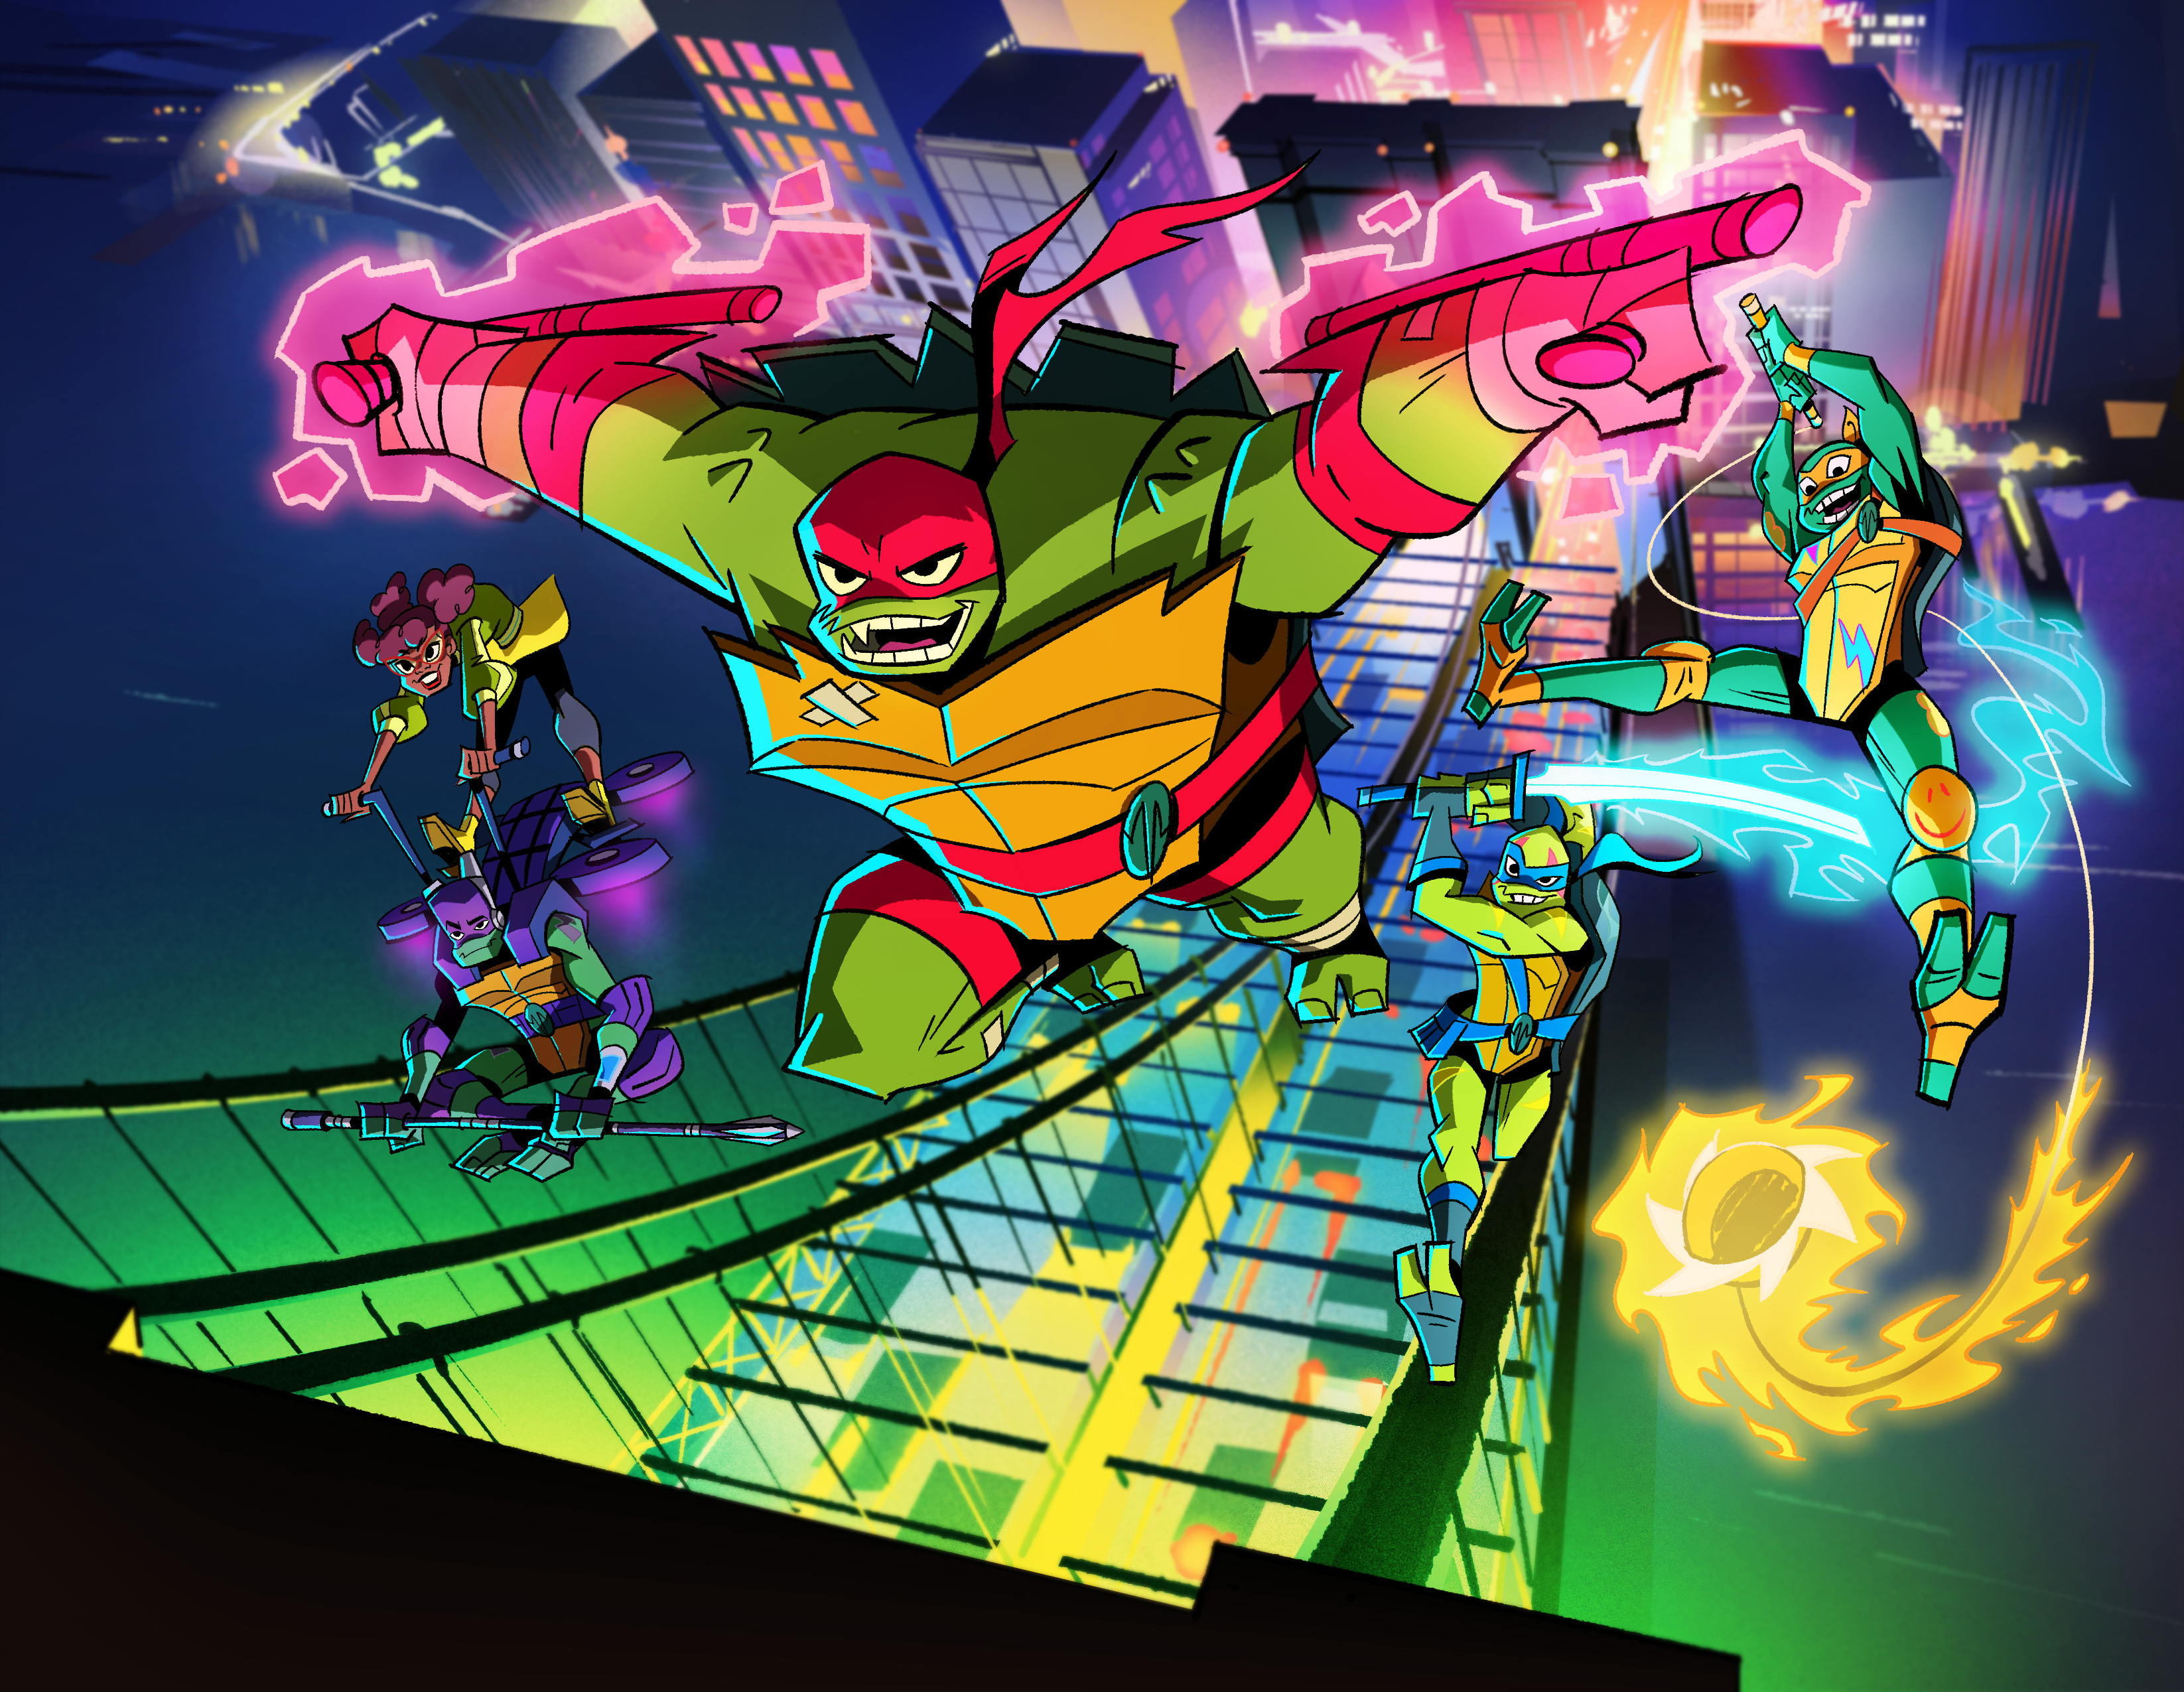 Rise of the Teenage Mutant Ninja Turtles Character Art Revealed